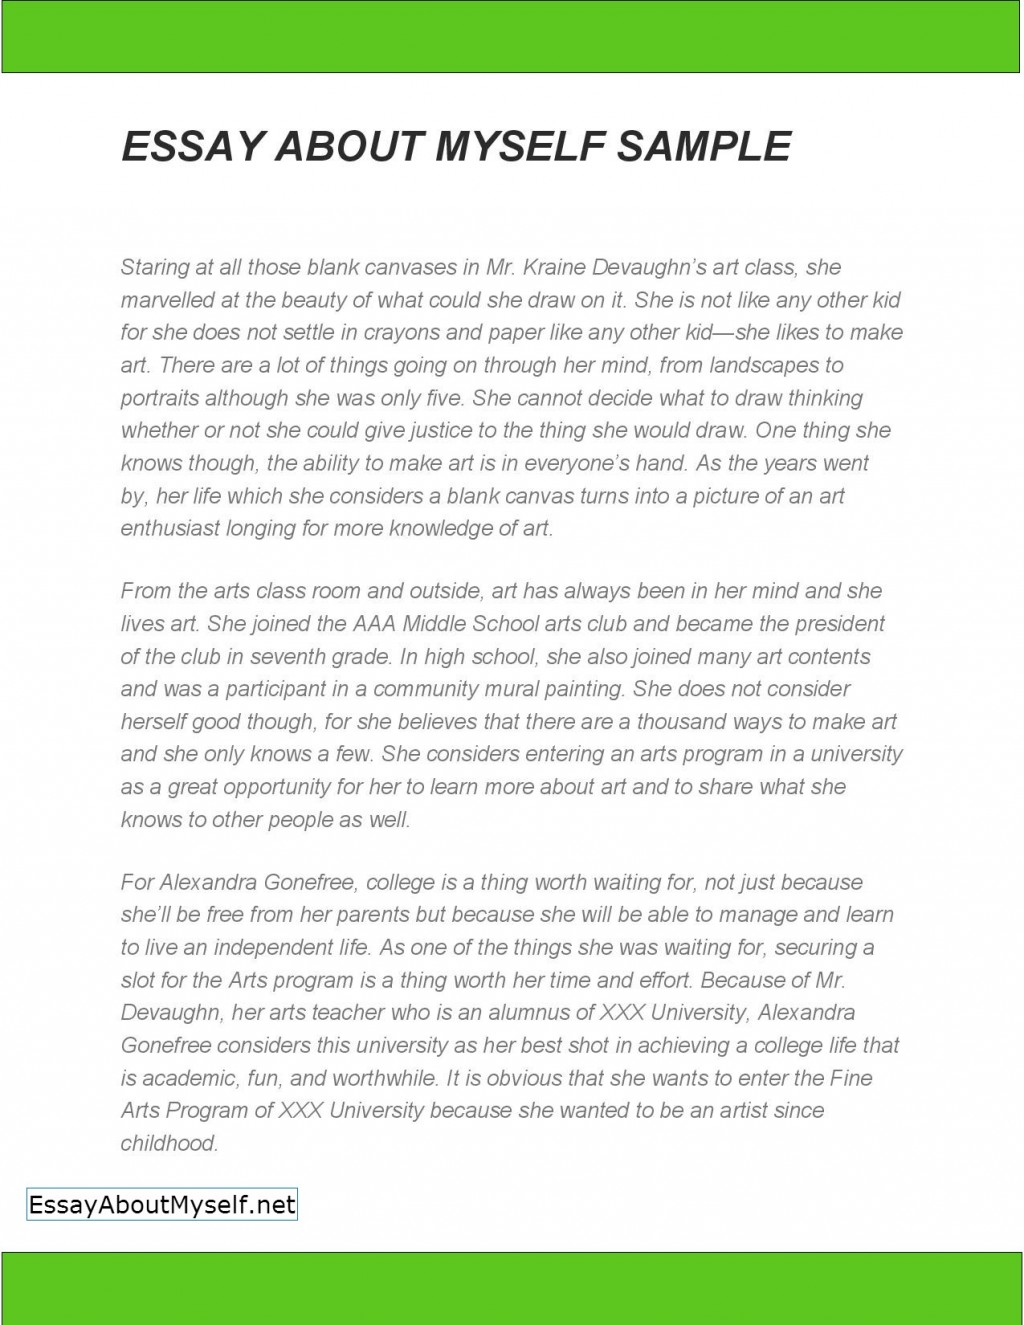 002 Essay About Myself Sample Fearsome For College Title Large